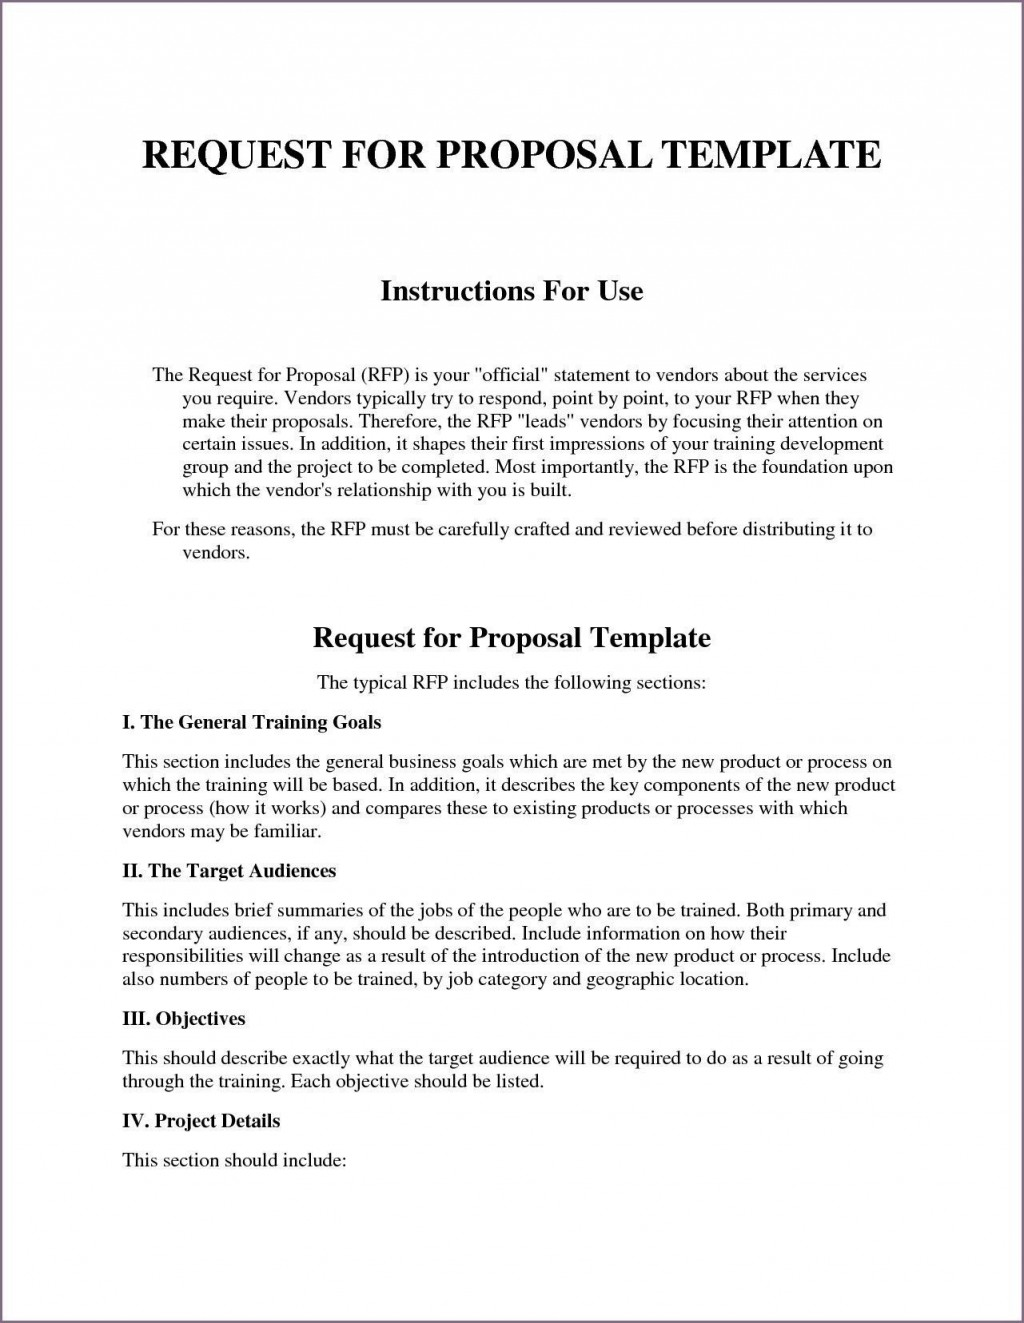 001 Sensational Request For Proposal Rfp Template Construction High Resolution Large